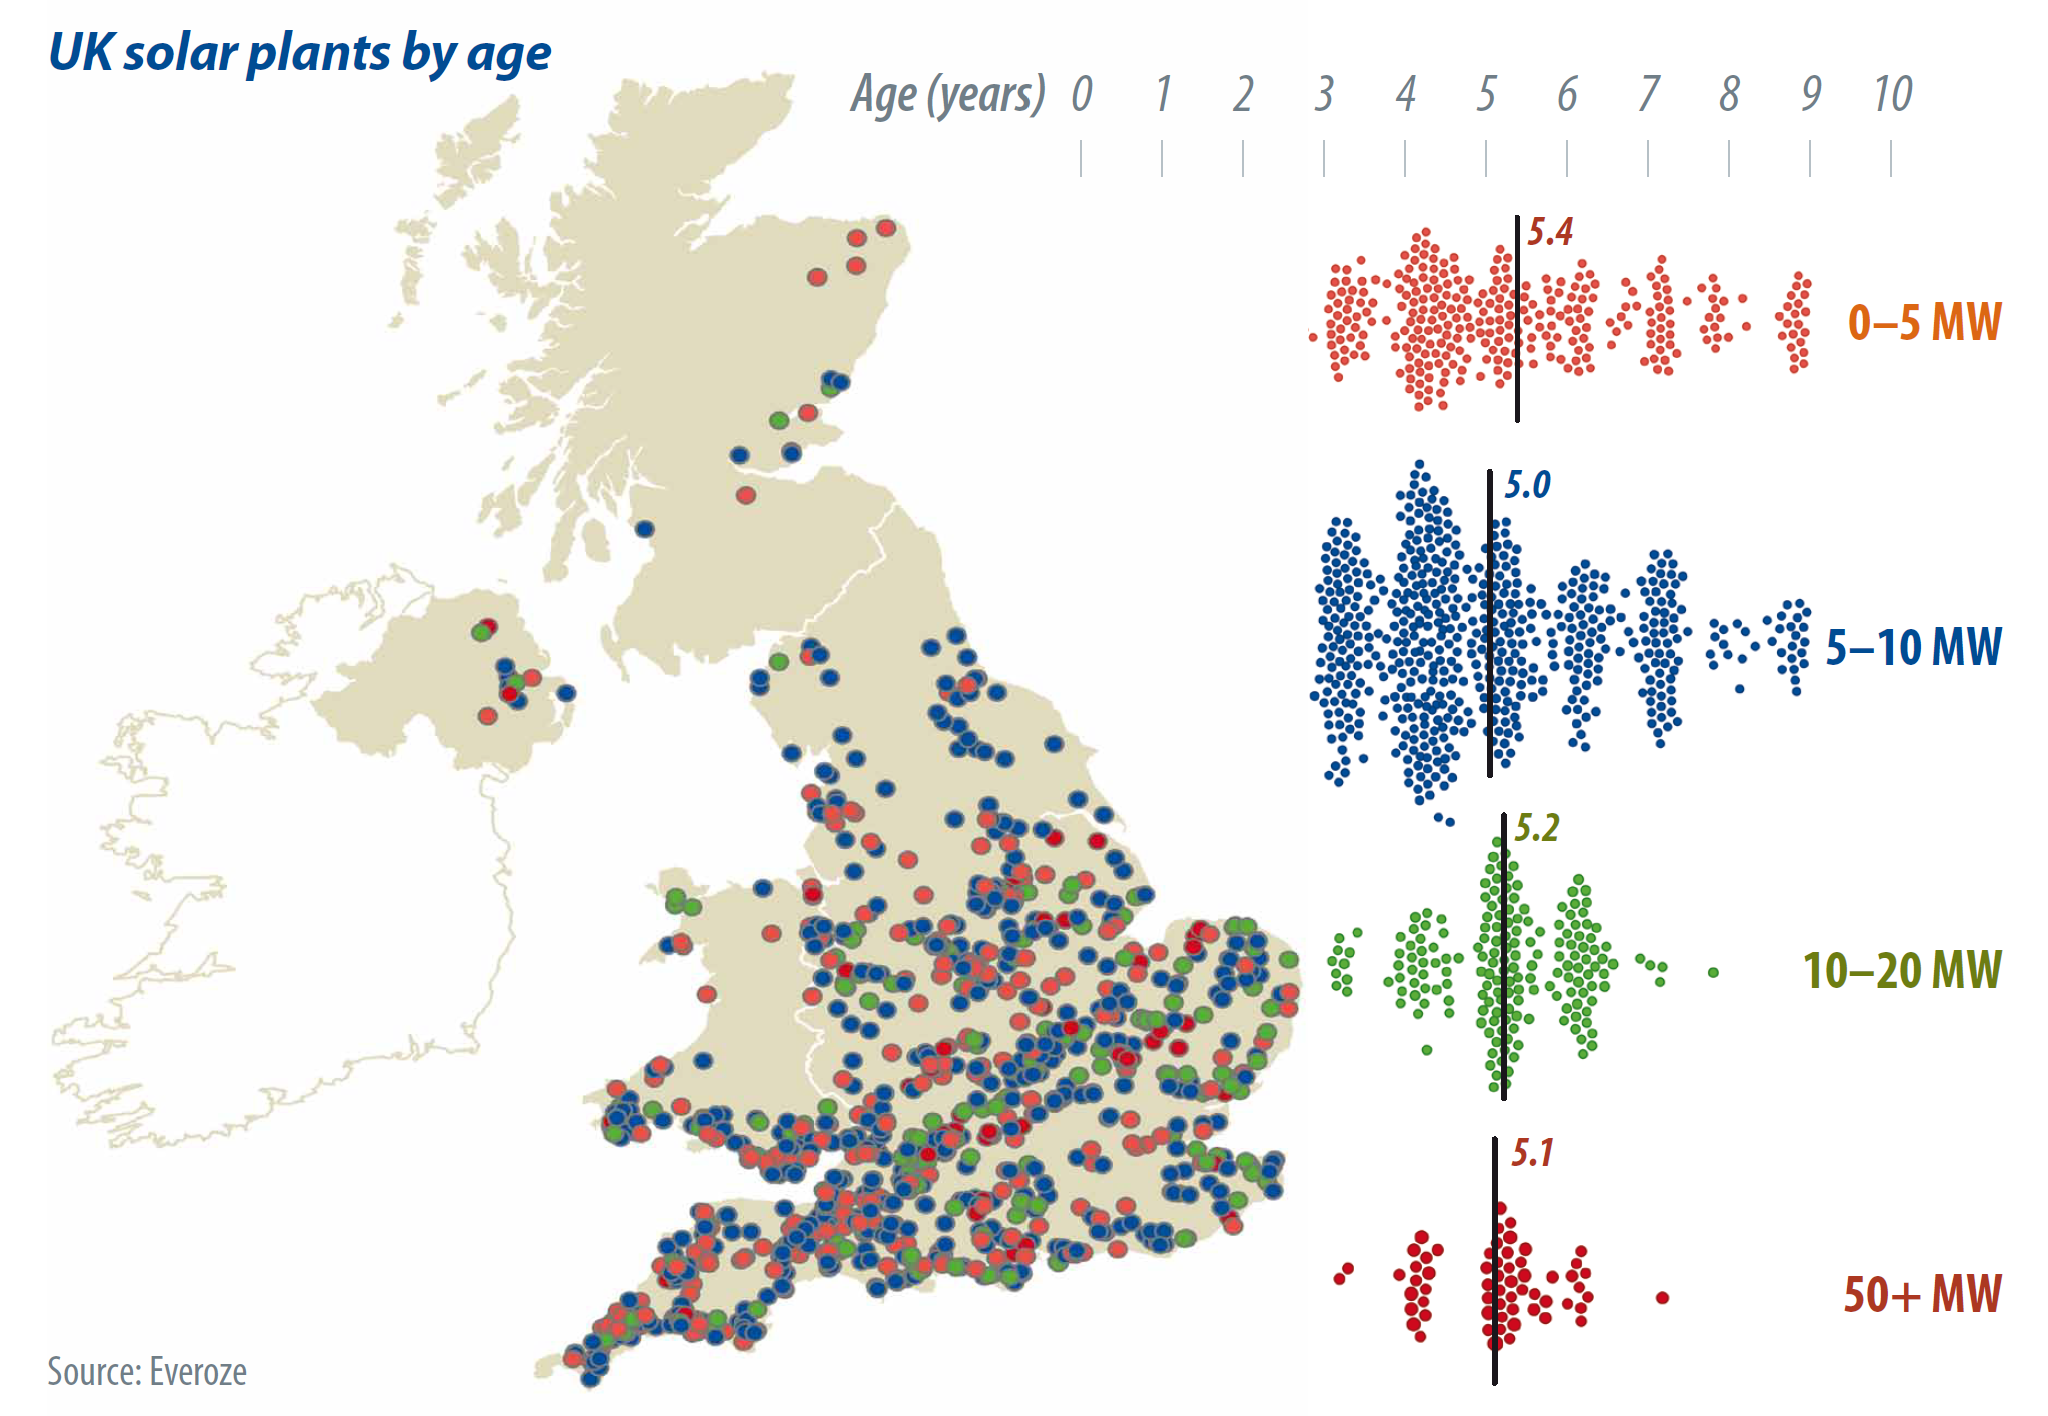 UK solar plants by age